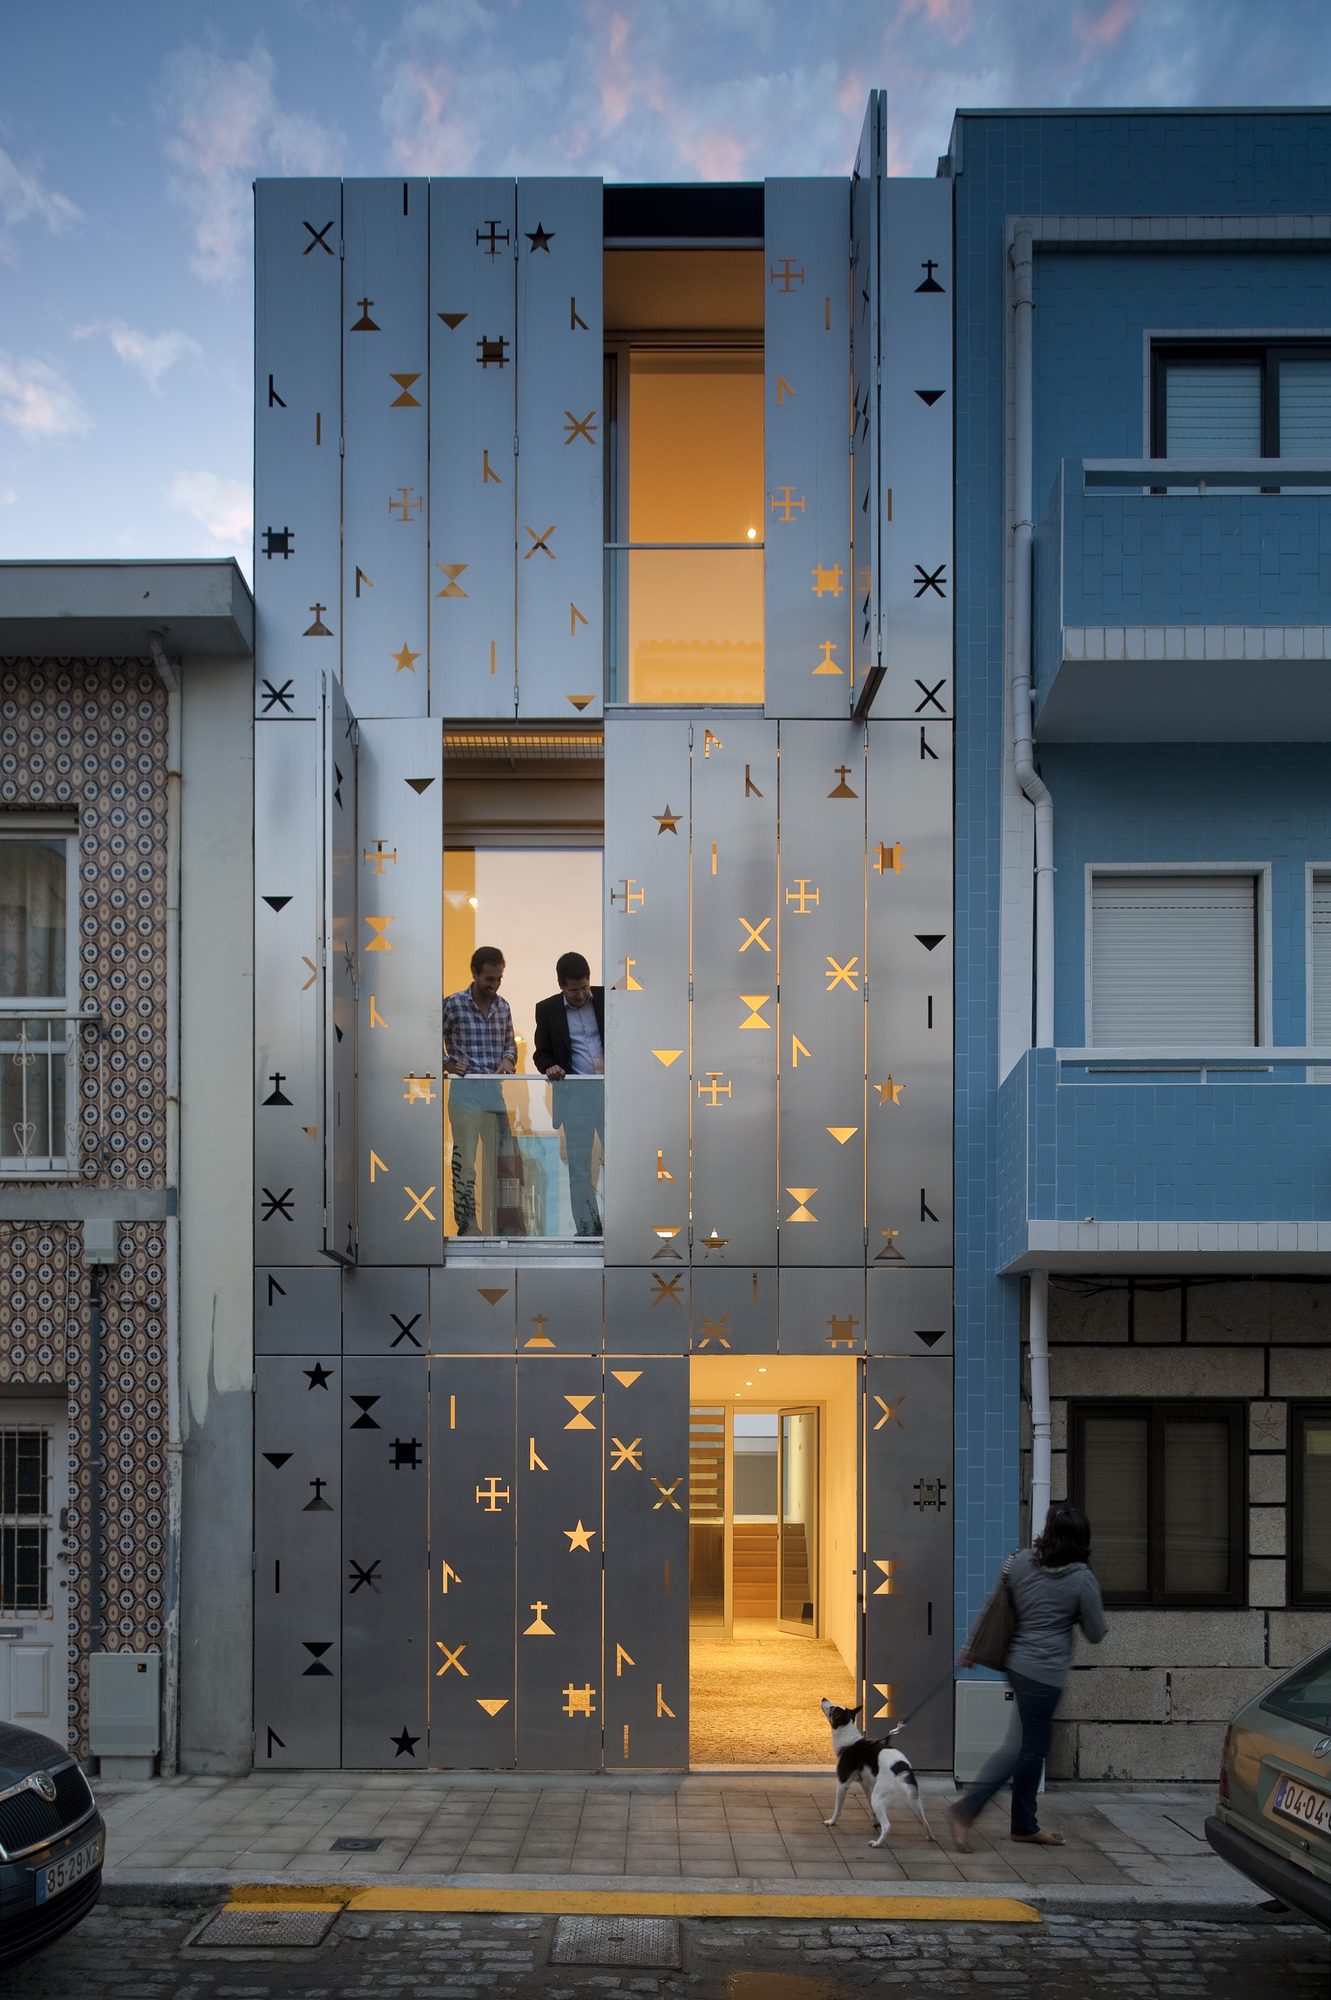 House 77 / dIONISO LAB, Courtesy of dIONISO LAB